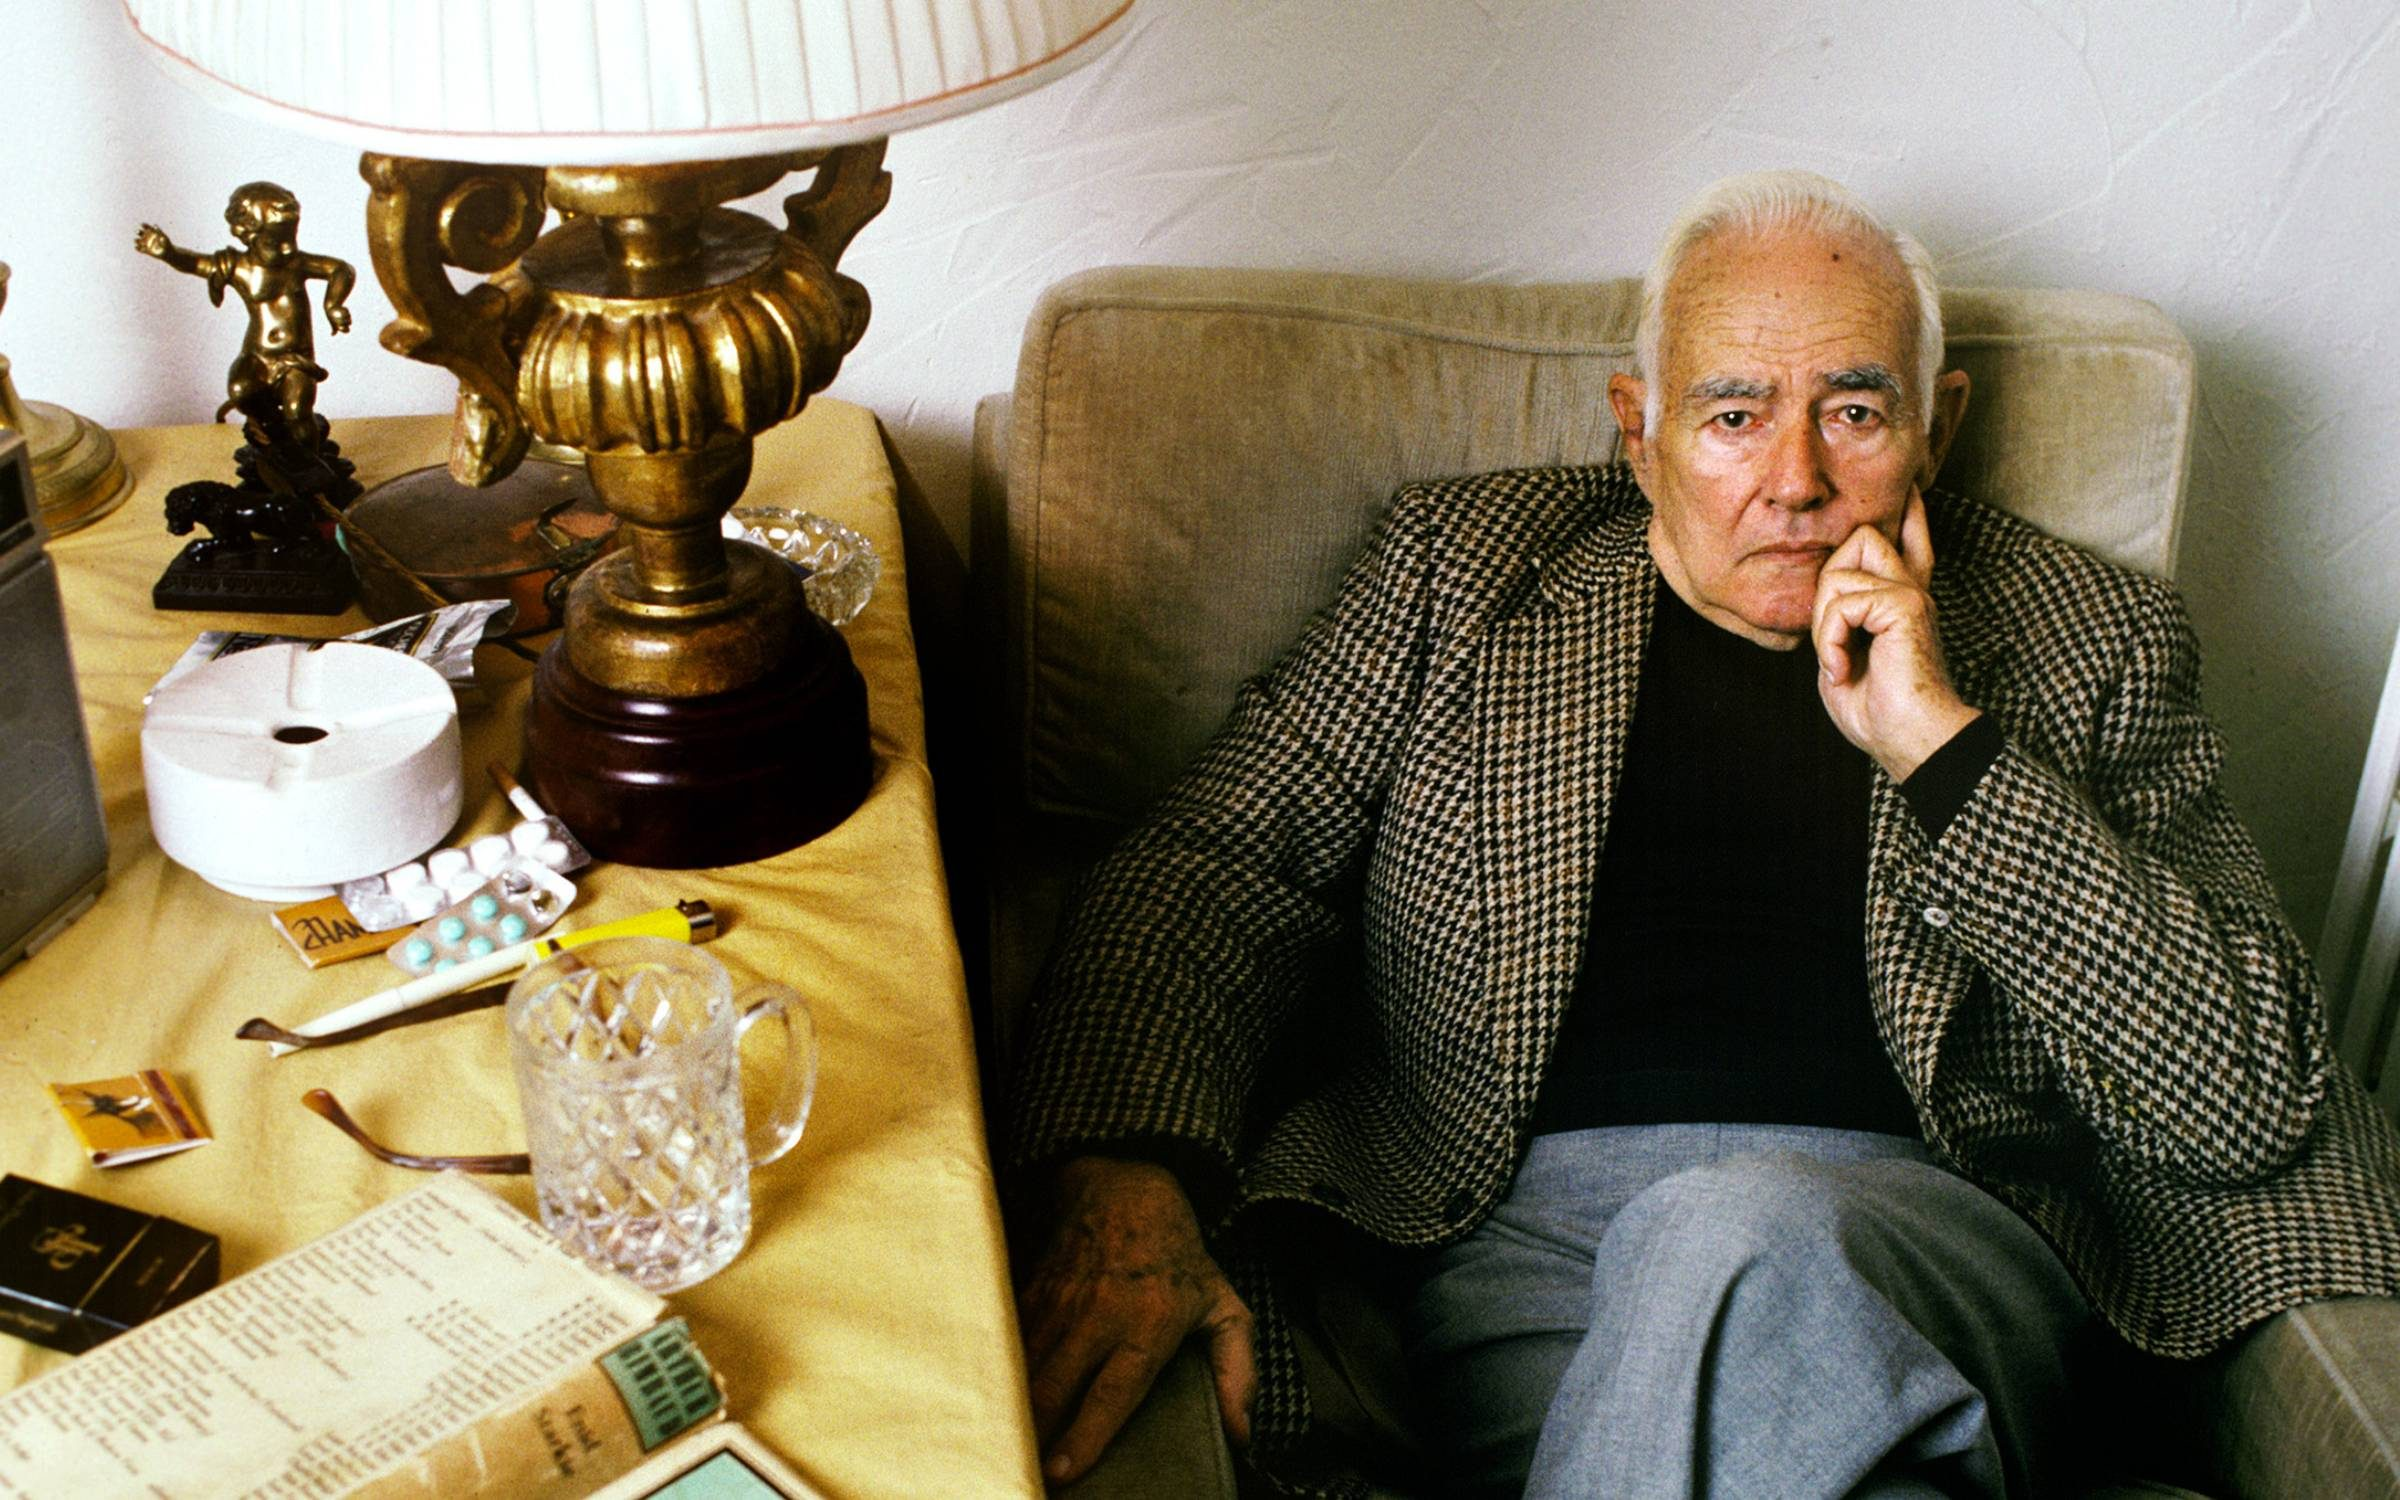 GRASSE;FRANCE - OCTOBER 18: American writer Frederic Prokosch (1908-1989) poses at home in Grasse,France on the 18th of October 1987. (Photo by Ulf Andersen/Getty Images)